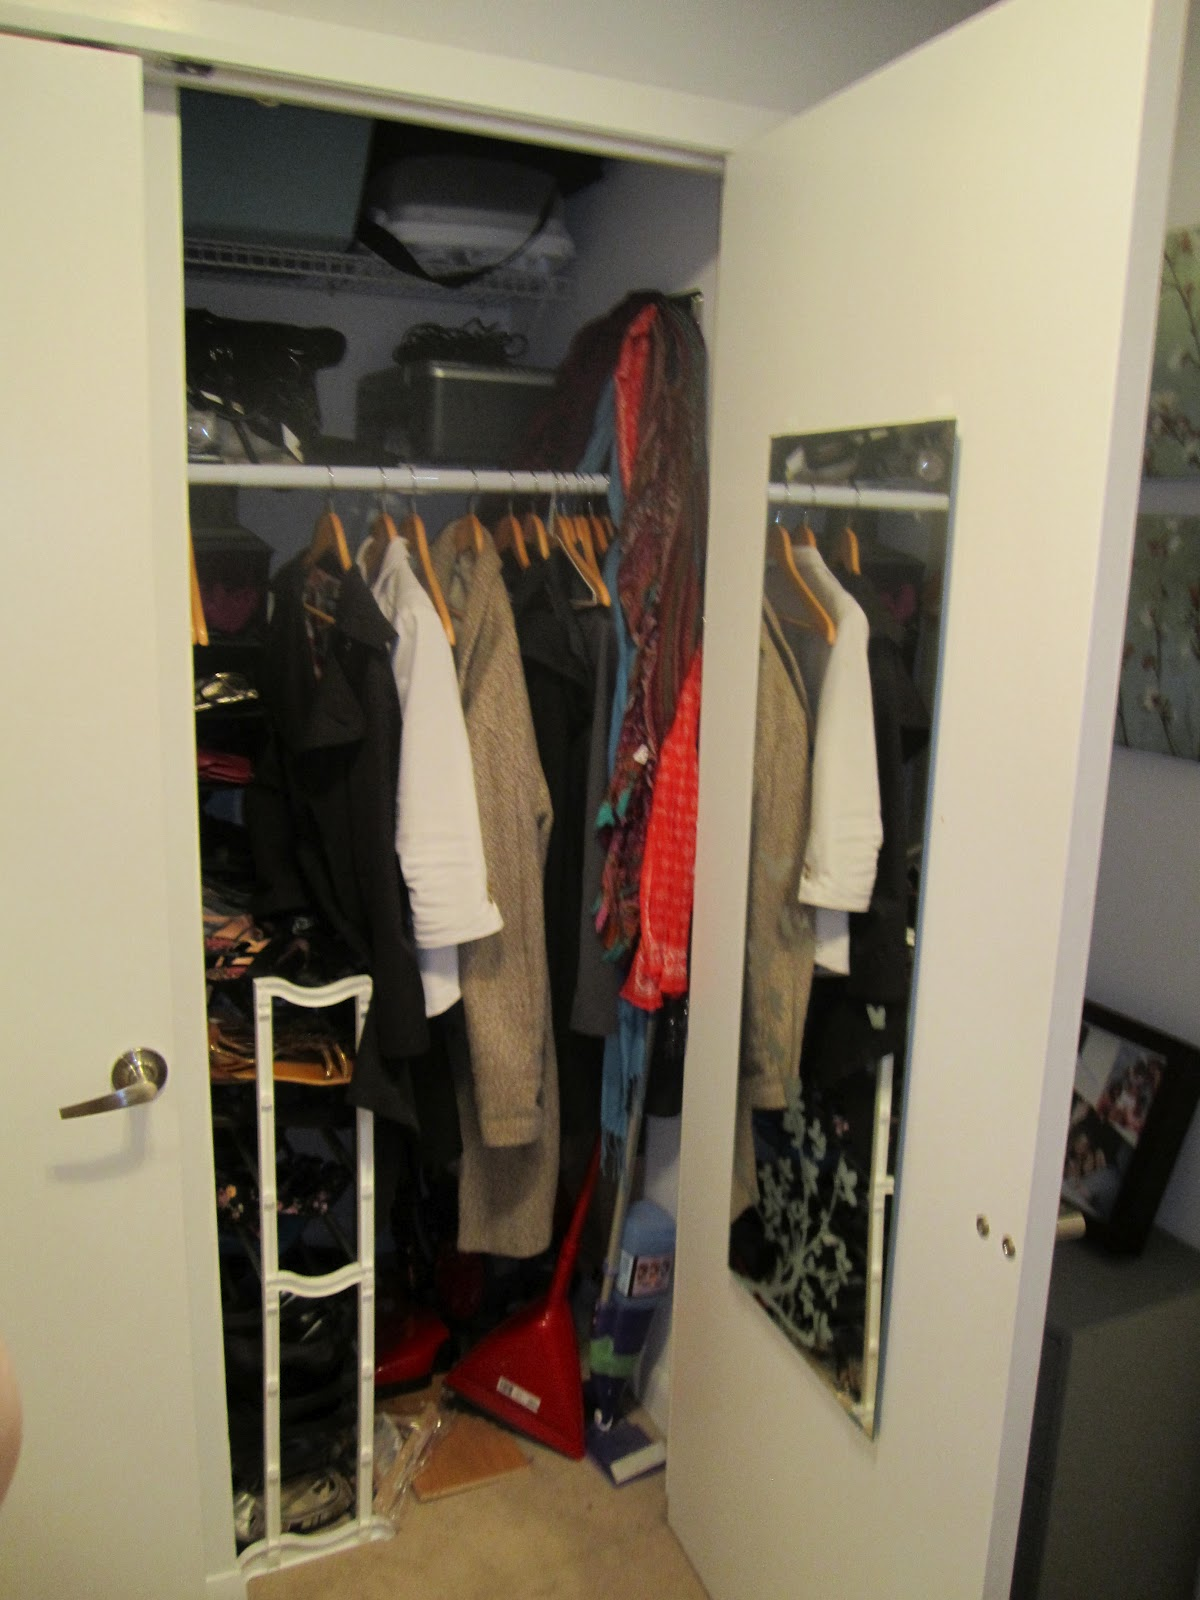 It Is Actually A Fairly Sizable Closet. The Coats Hang In The Front On The  New Bar My Dad Installed, And The Vacuum Sits In The Back.